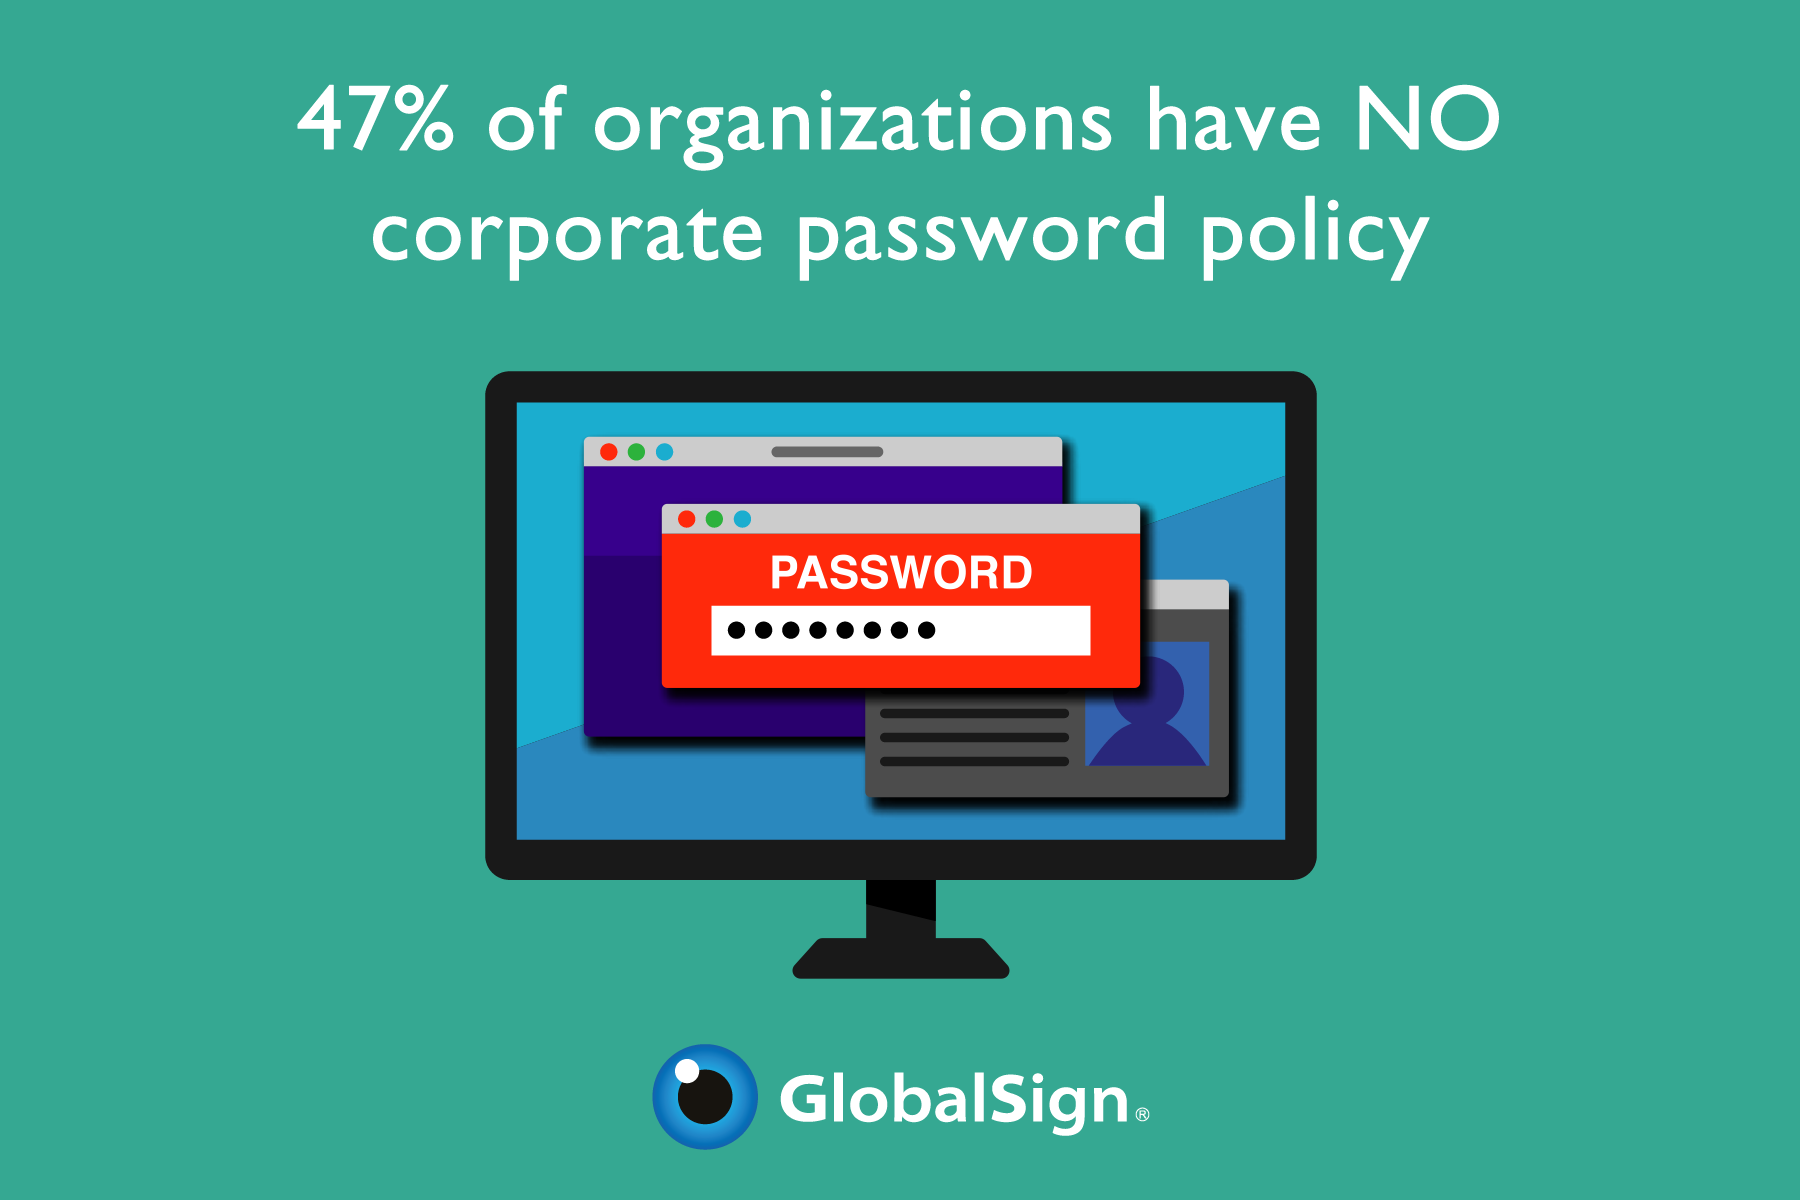 47_of_organizations_have_NO_corporate_password_policy_LN.fw.png